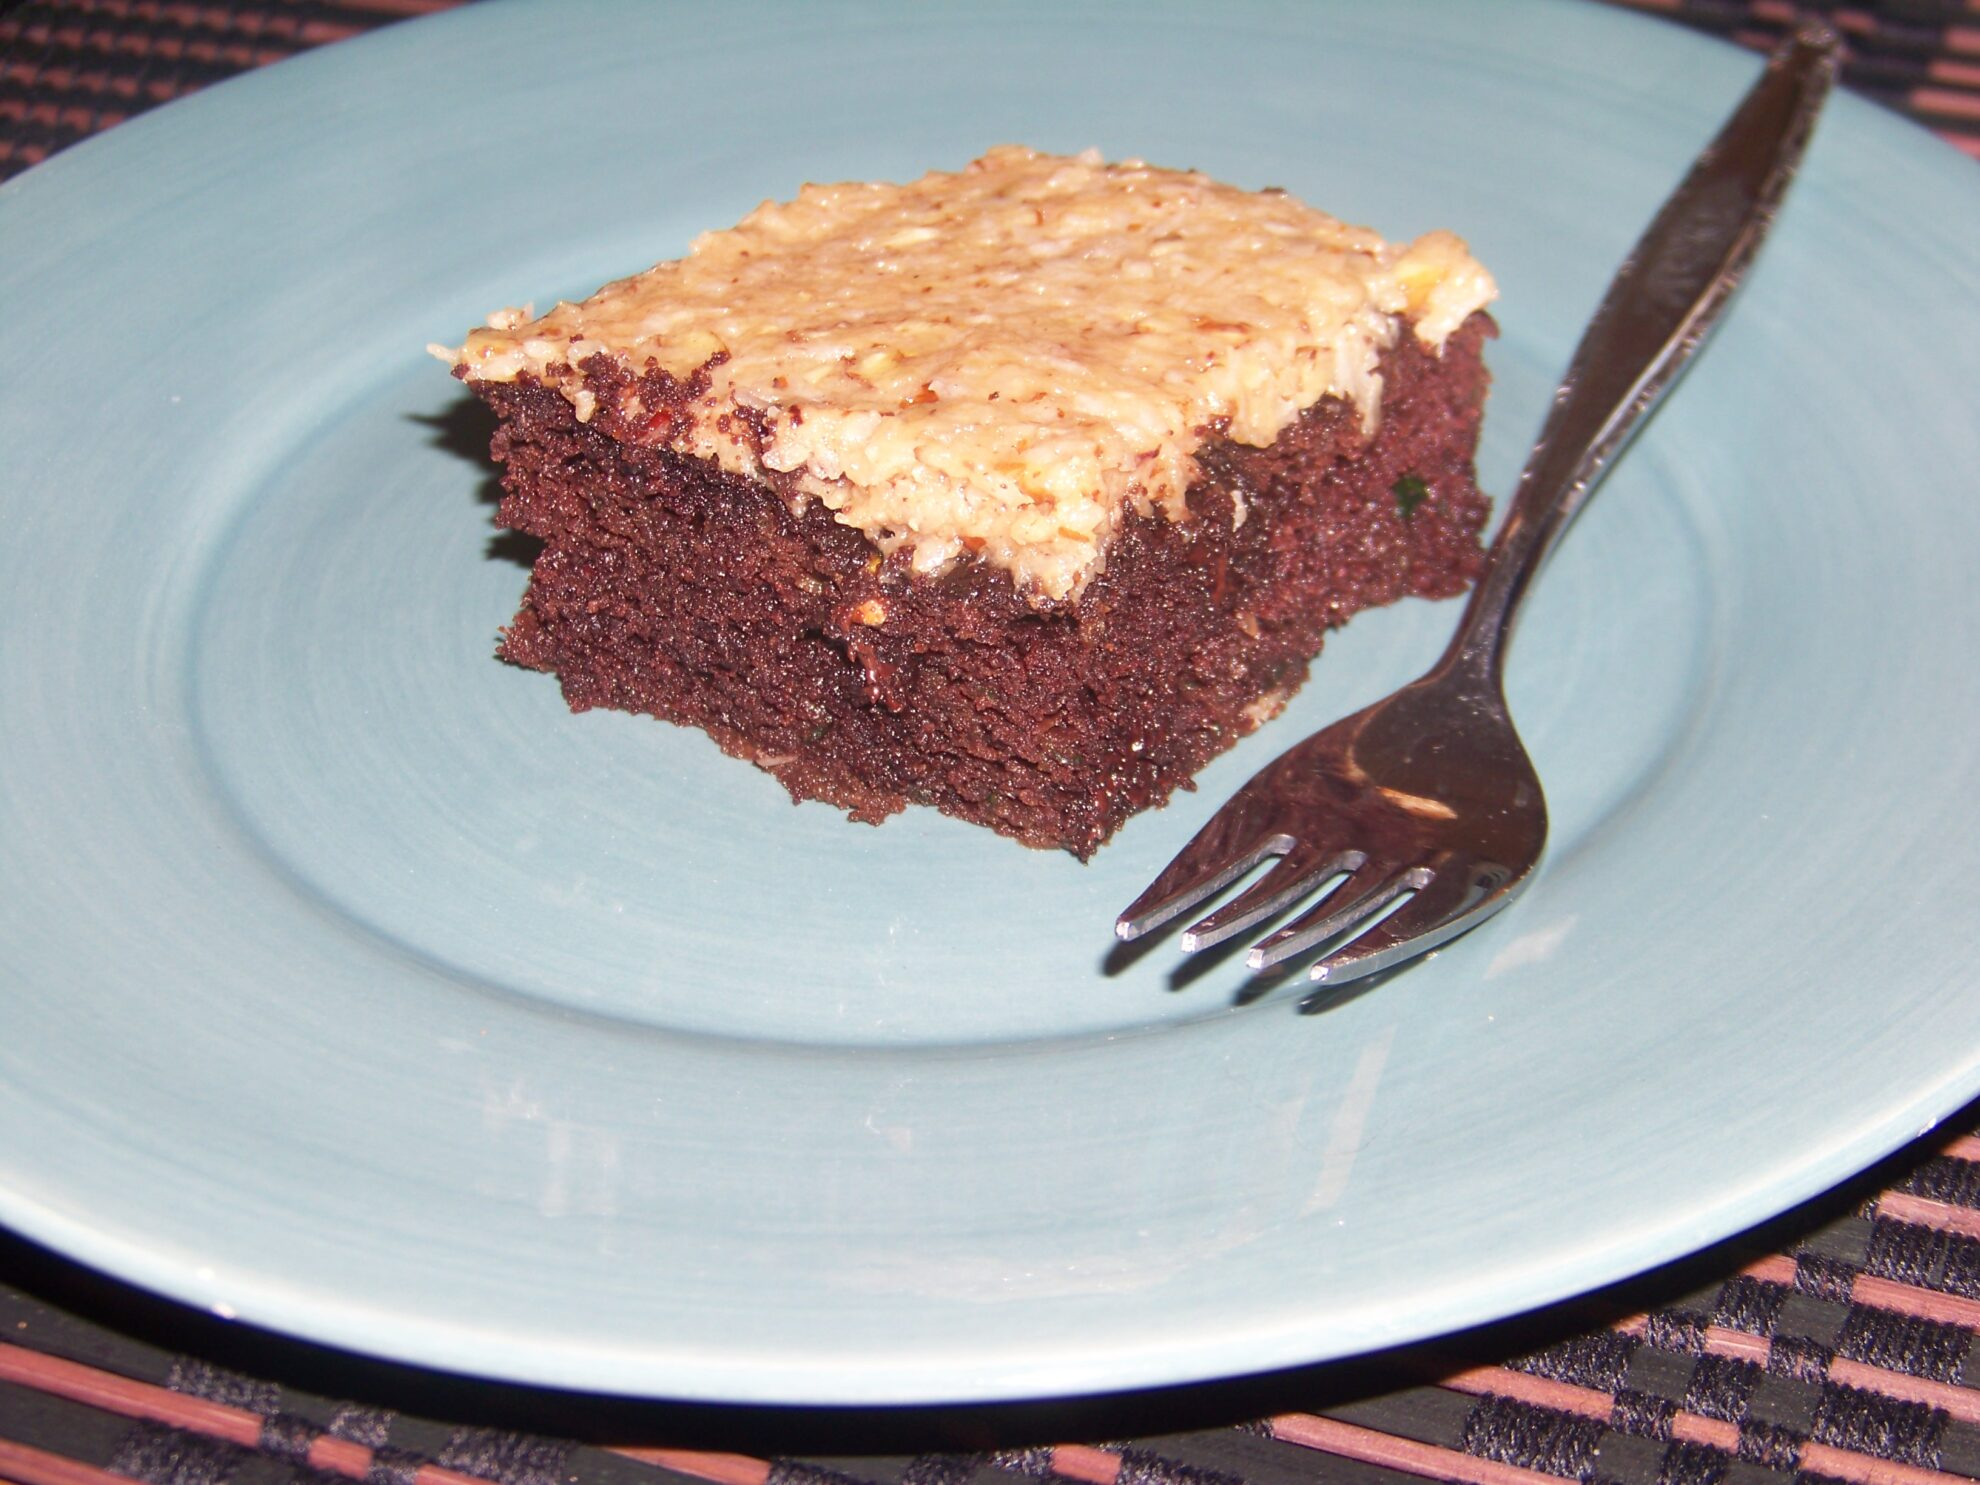 Chocolate Zucchini Cake with Coconut Pecan Frosting